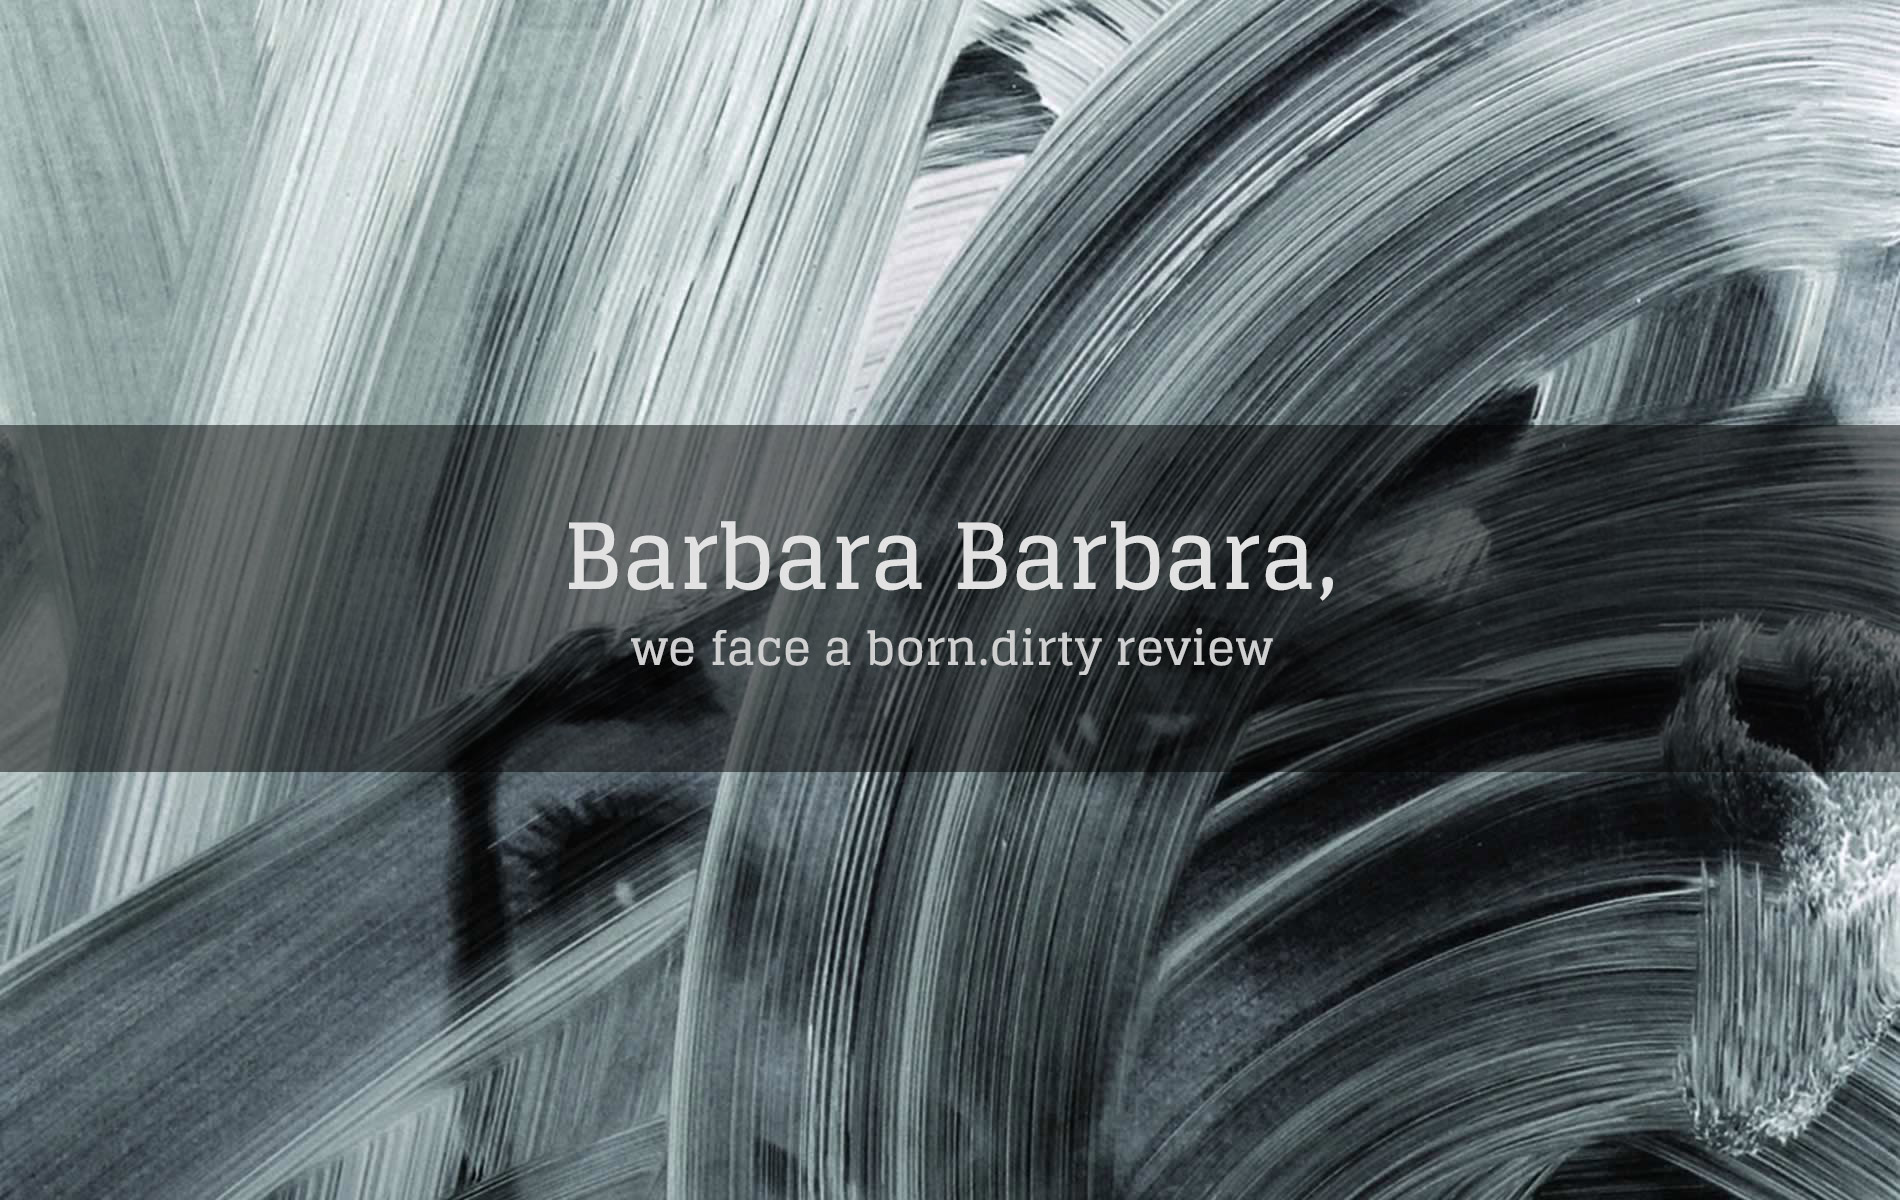 underworld-barbara-barbara-review-born-dirty